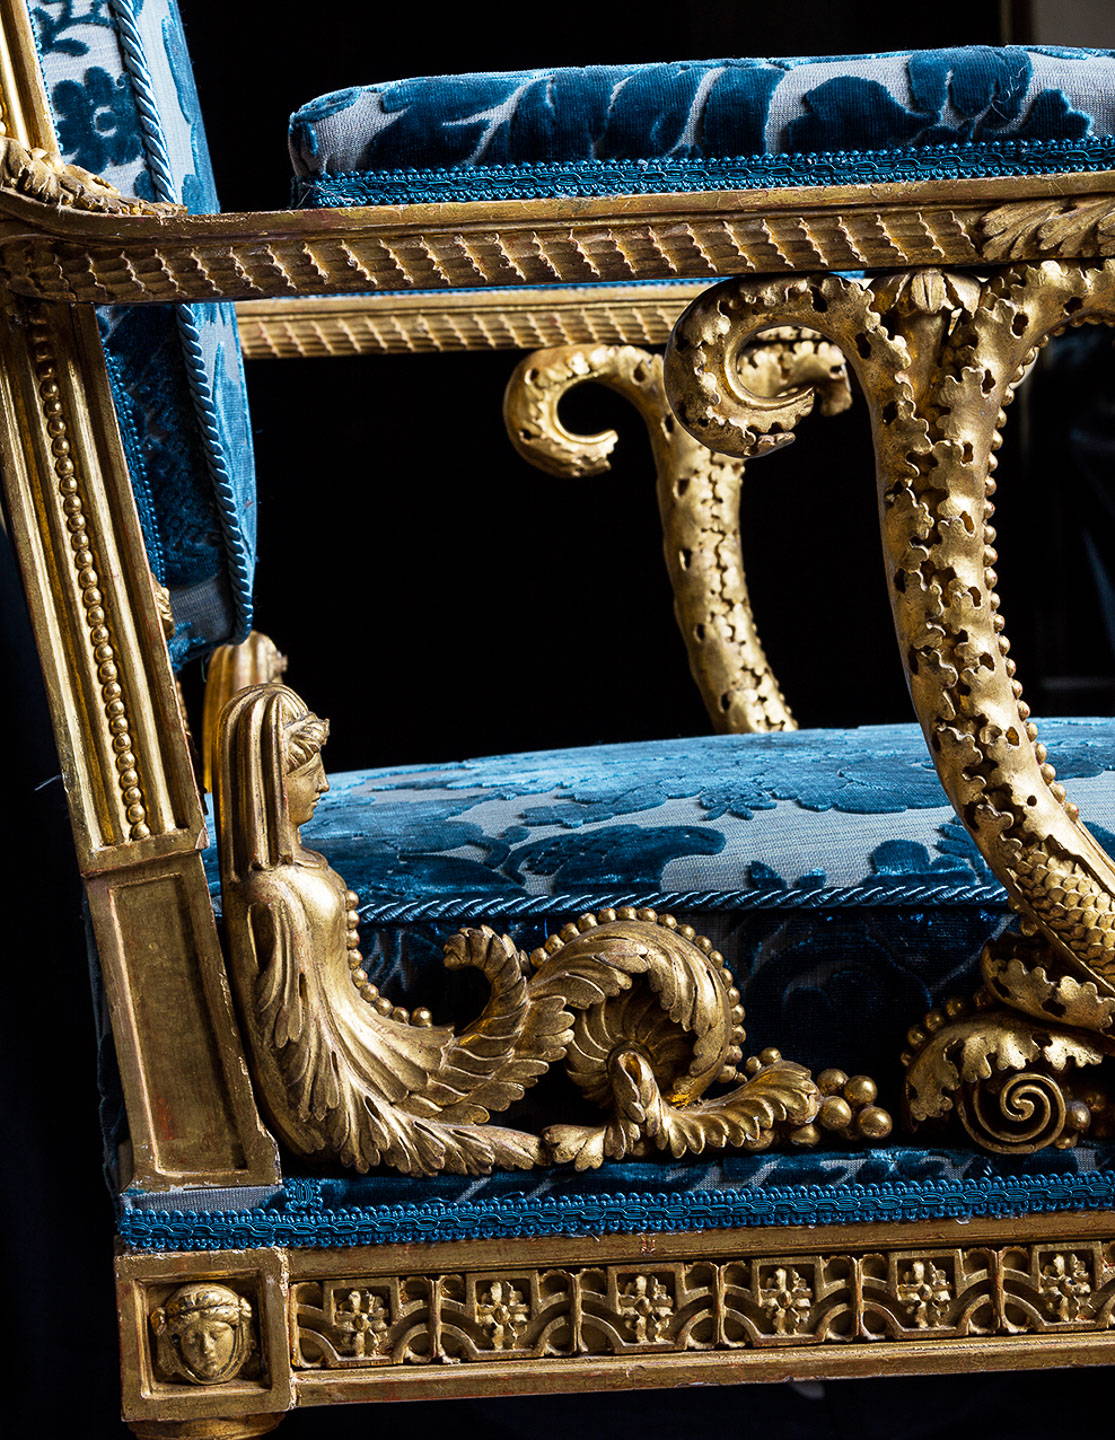 Villa Balbiano luxury private estate on lake Como unique art collection 18th century blue chair from Habsburg royal family collection detail 27.left000VB_int